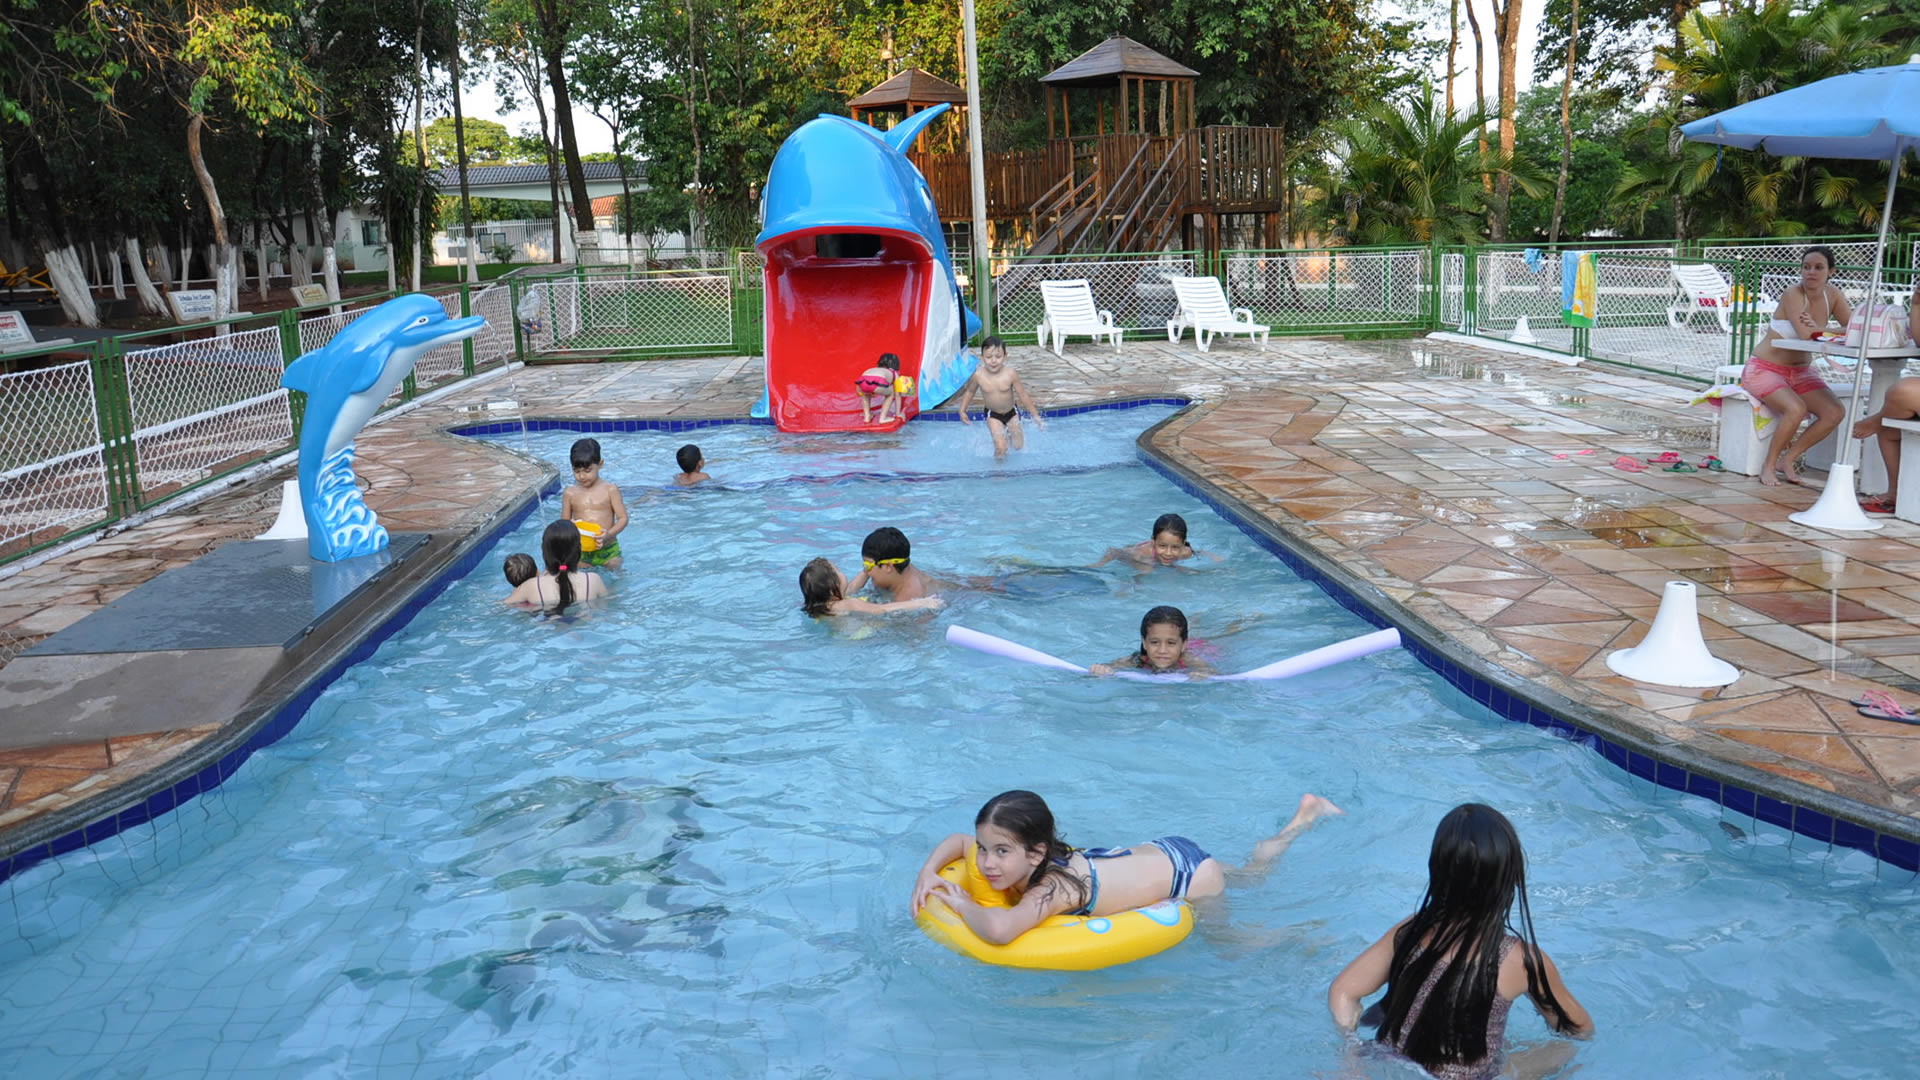 Piscina infantil caiua country clube for Piscinas desmontables infantiles